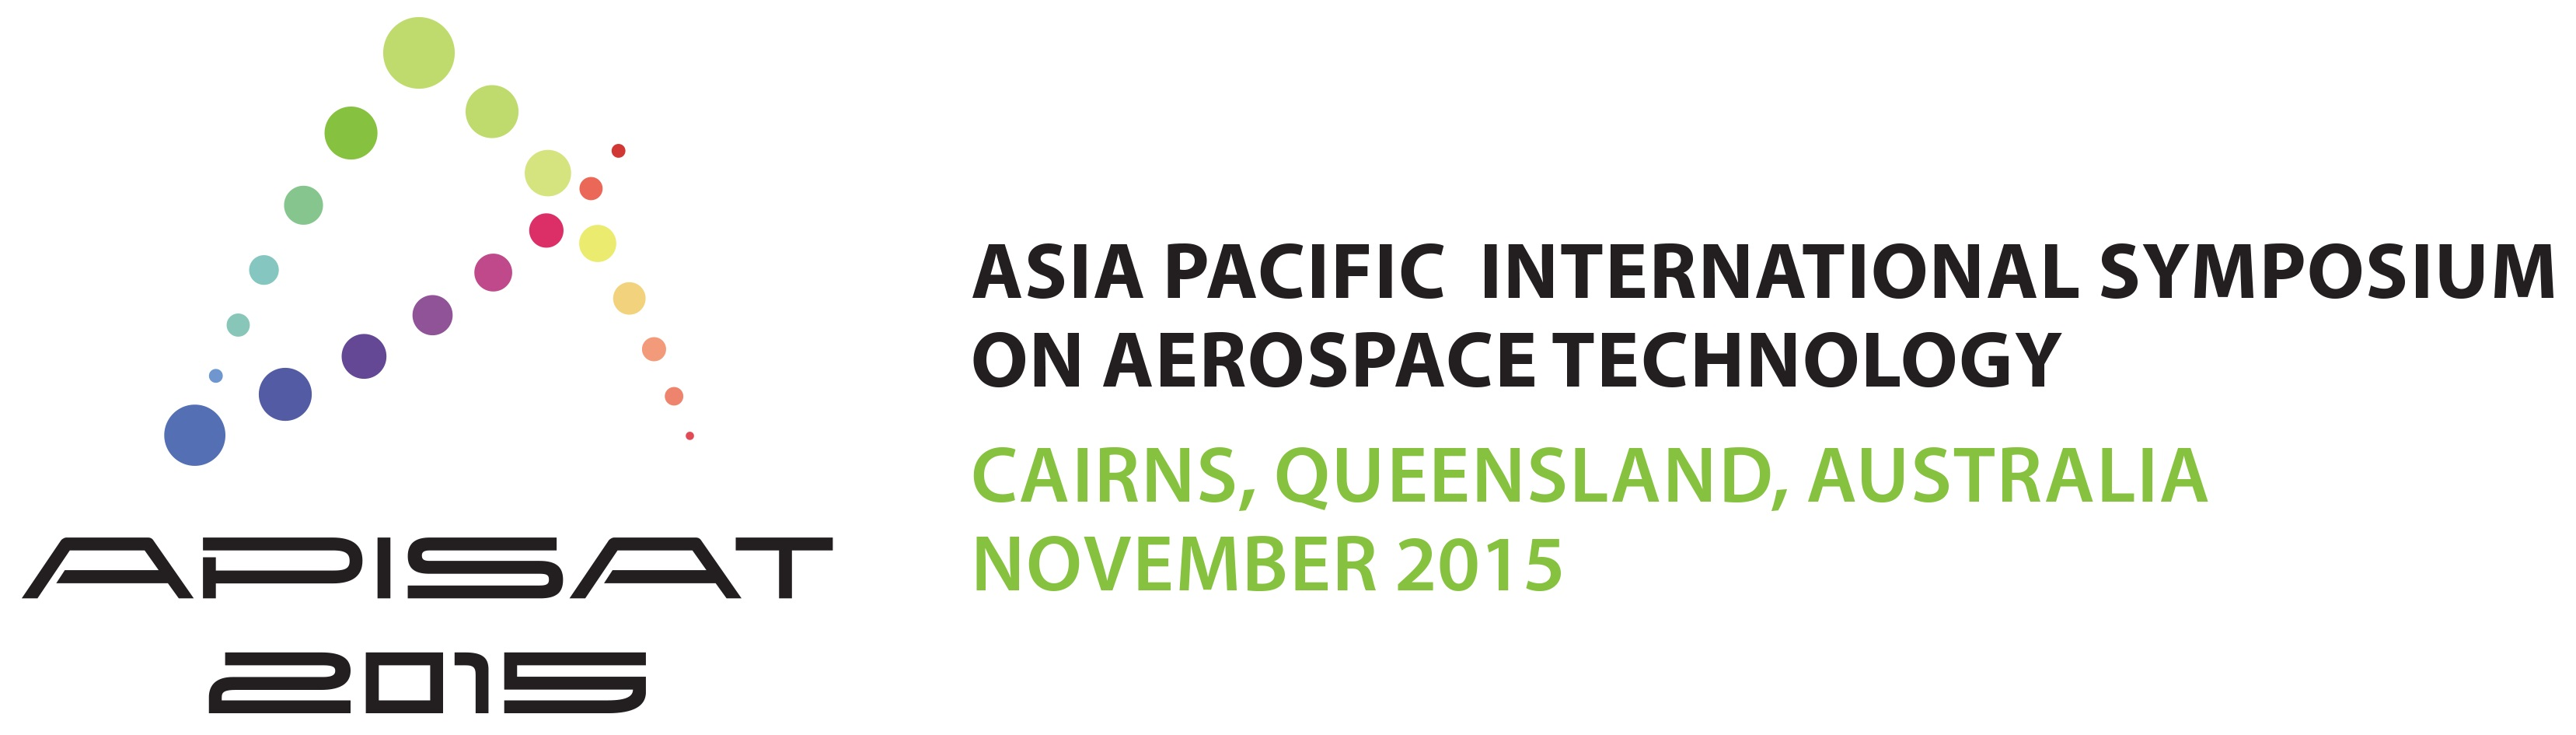 7th Asia-Pacific International Symposium on Aerospace Technology Conference